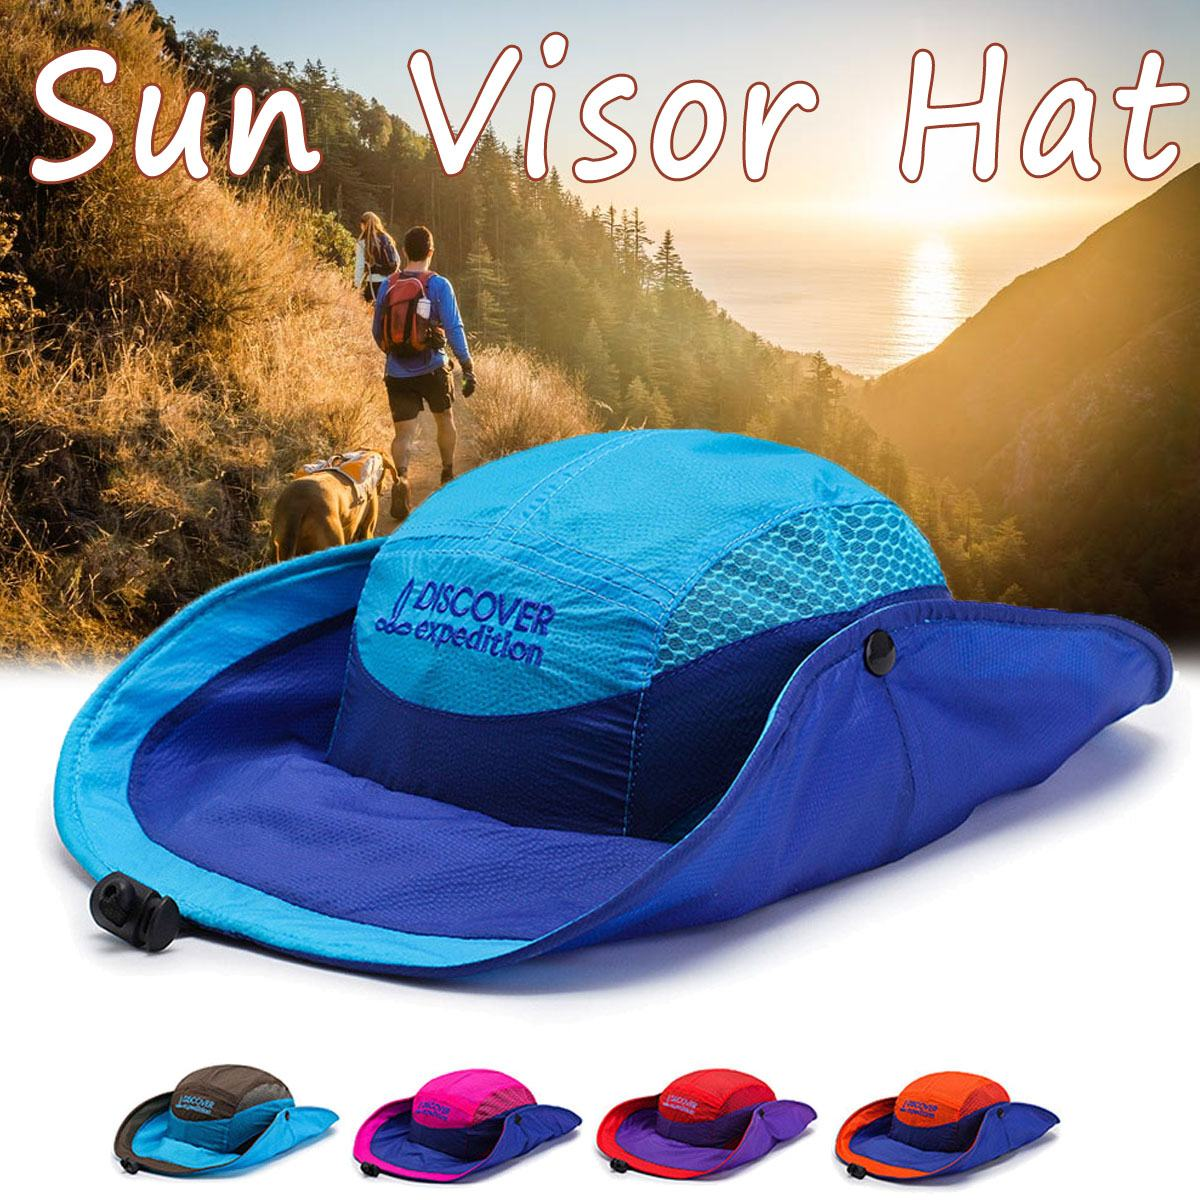 2019 Summer Sun Hat Bucket Summer Men Women Unisex Fishing Hat Sun UV Protection Long Large Wide Brim Hiking Outdoor wholesale image